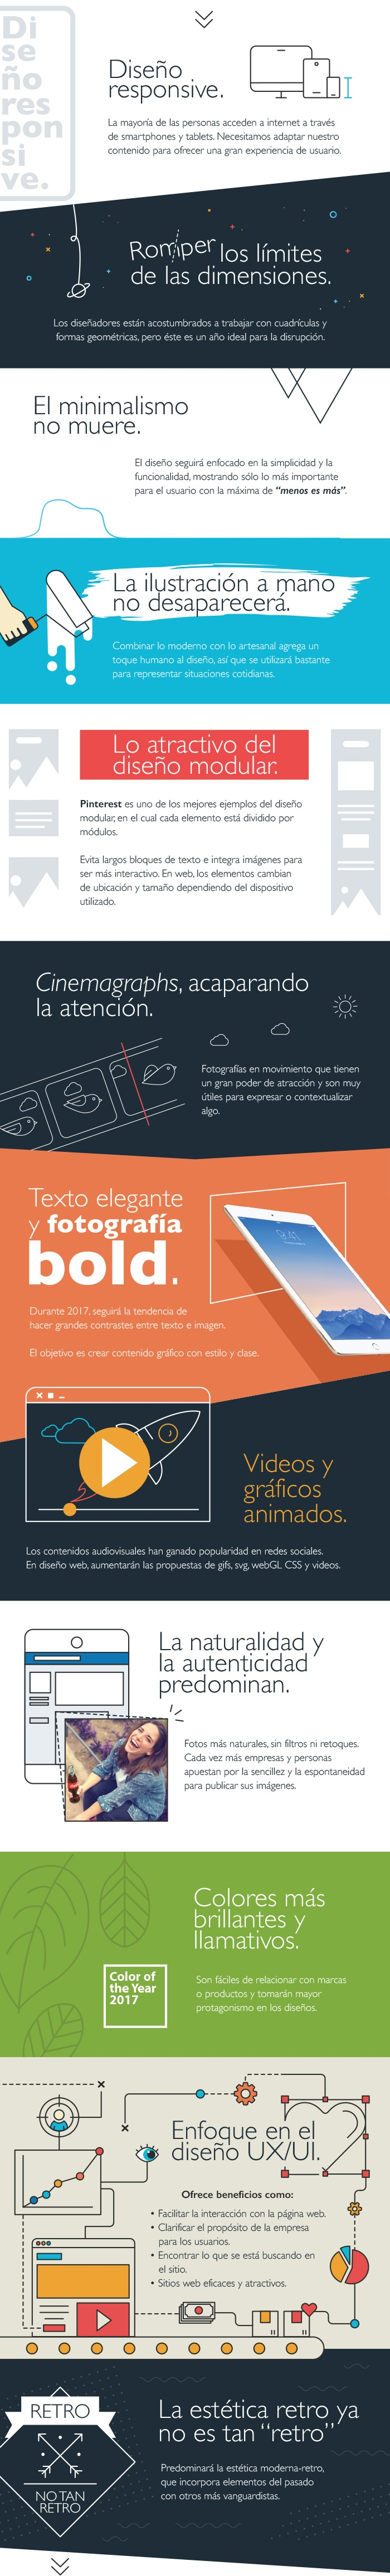 Infografia-ultimas-tendencias-diseno-grafico-2017-cliento-marketing-digital.jpg